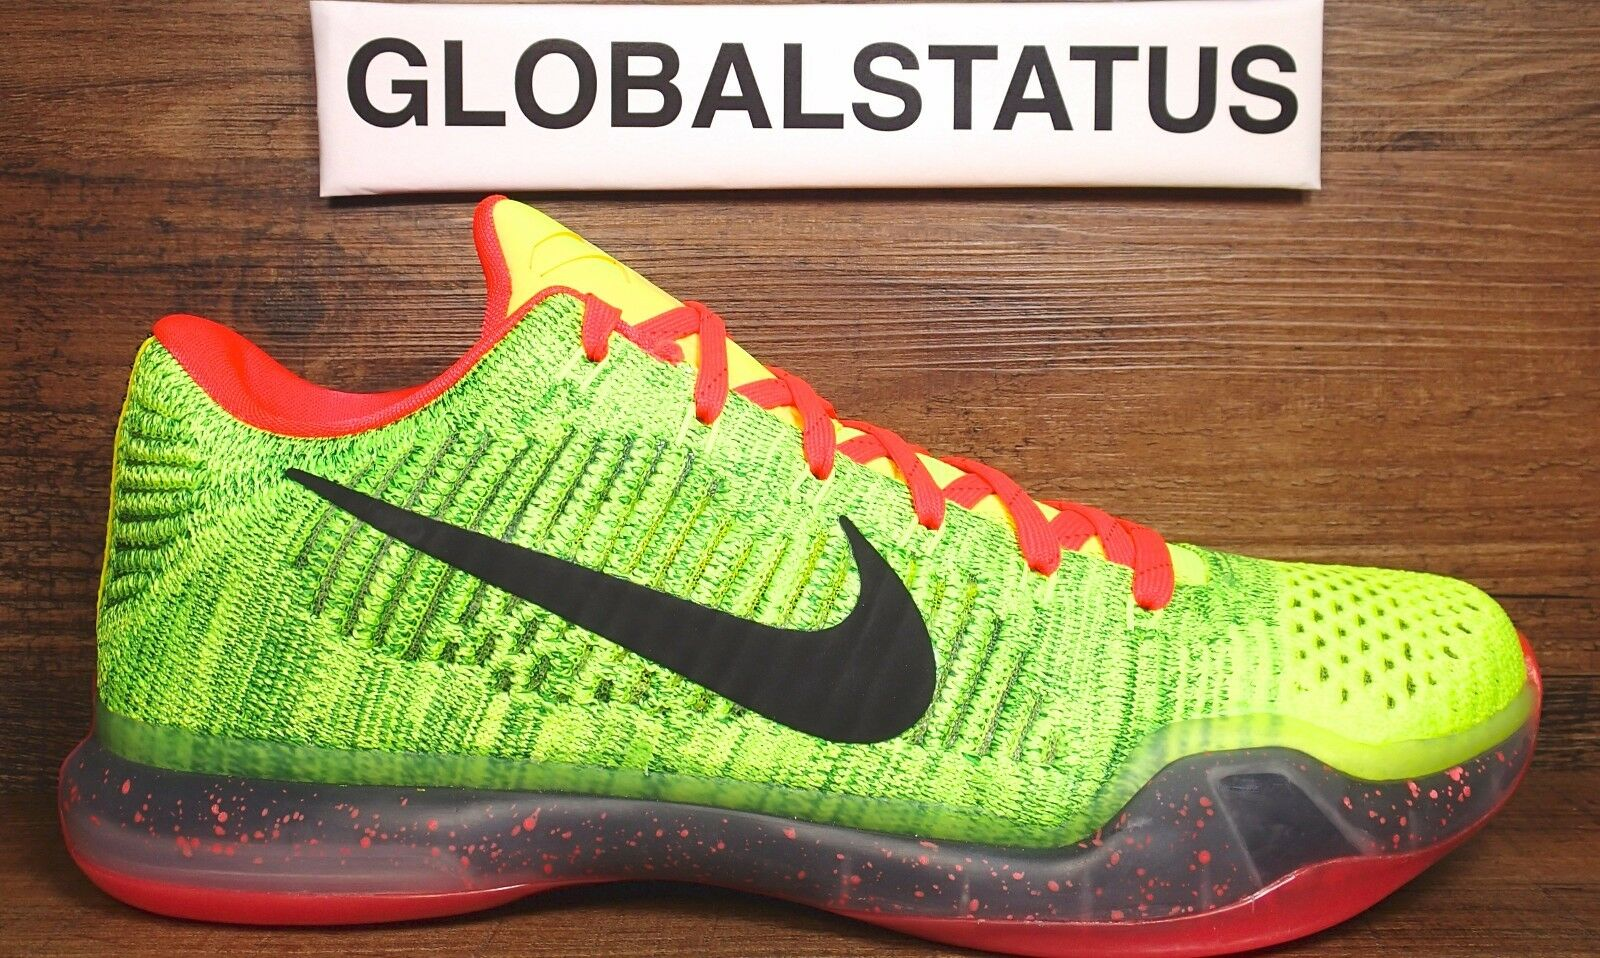 NIKE ID KOBE X 10 ELITE LOW GRINCH COAL HEARTED CUSTOM SHOES 802817 901 SZ 10.5